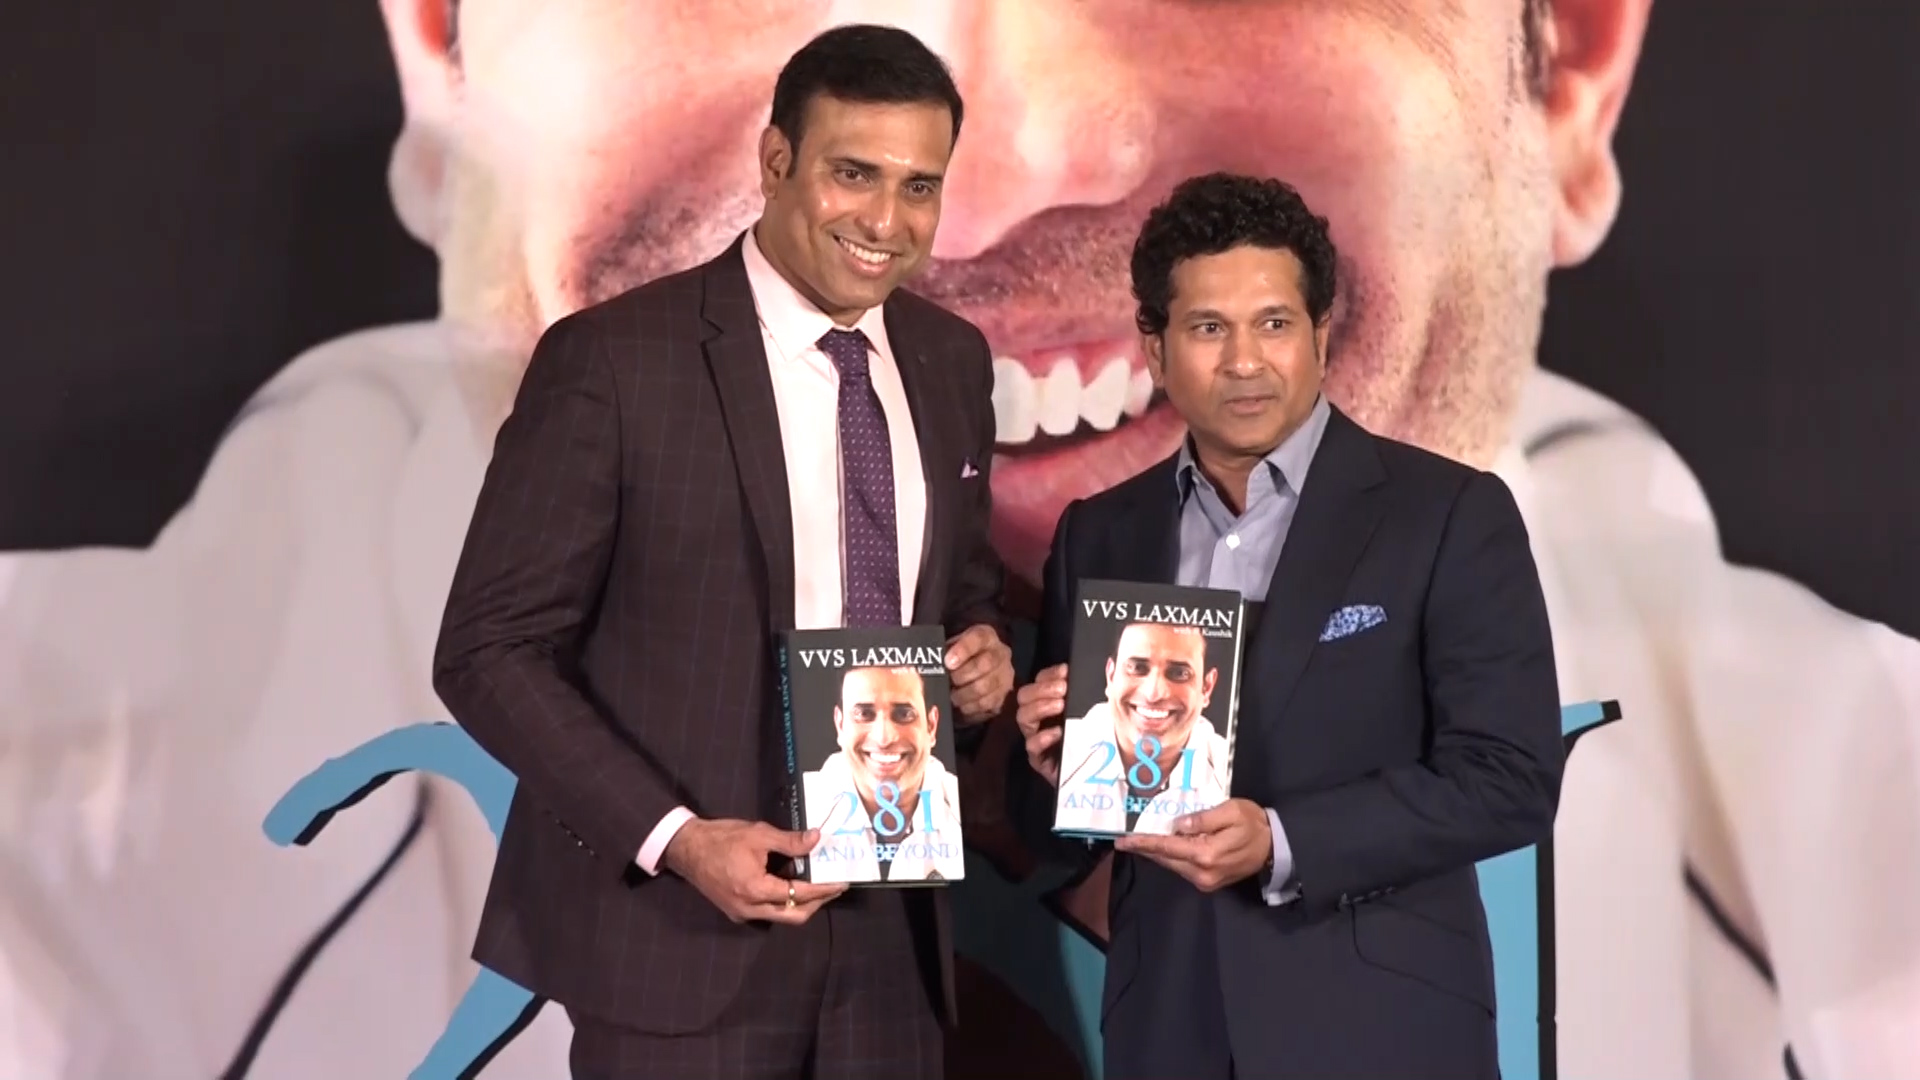 VVS Laxman and Sachin Tendulkar at the launch of 281 and Beyond